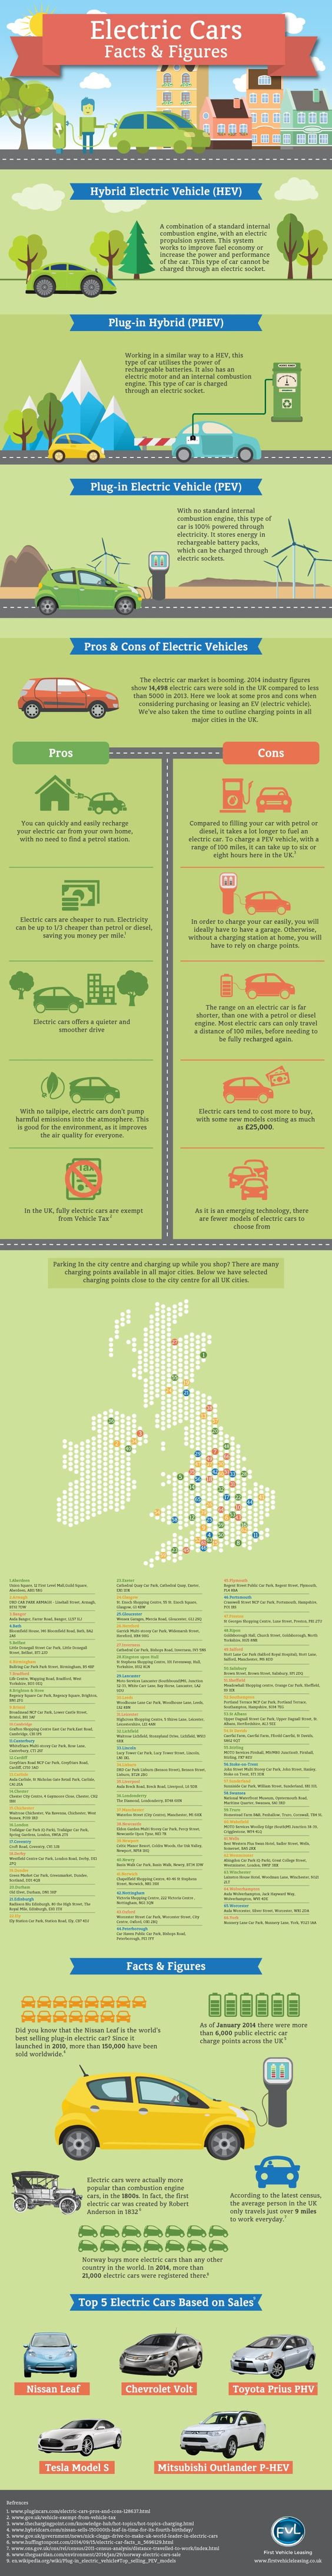 Firs Vehicle Leasing Electric Cars Infographic